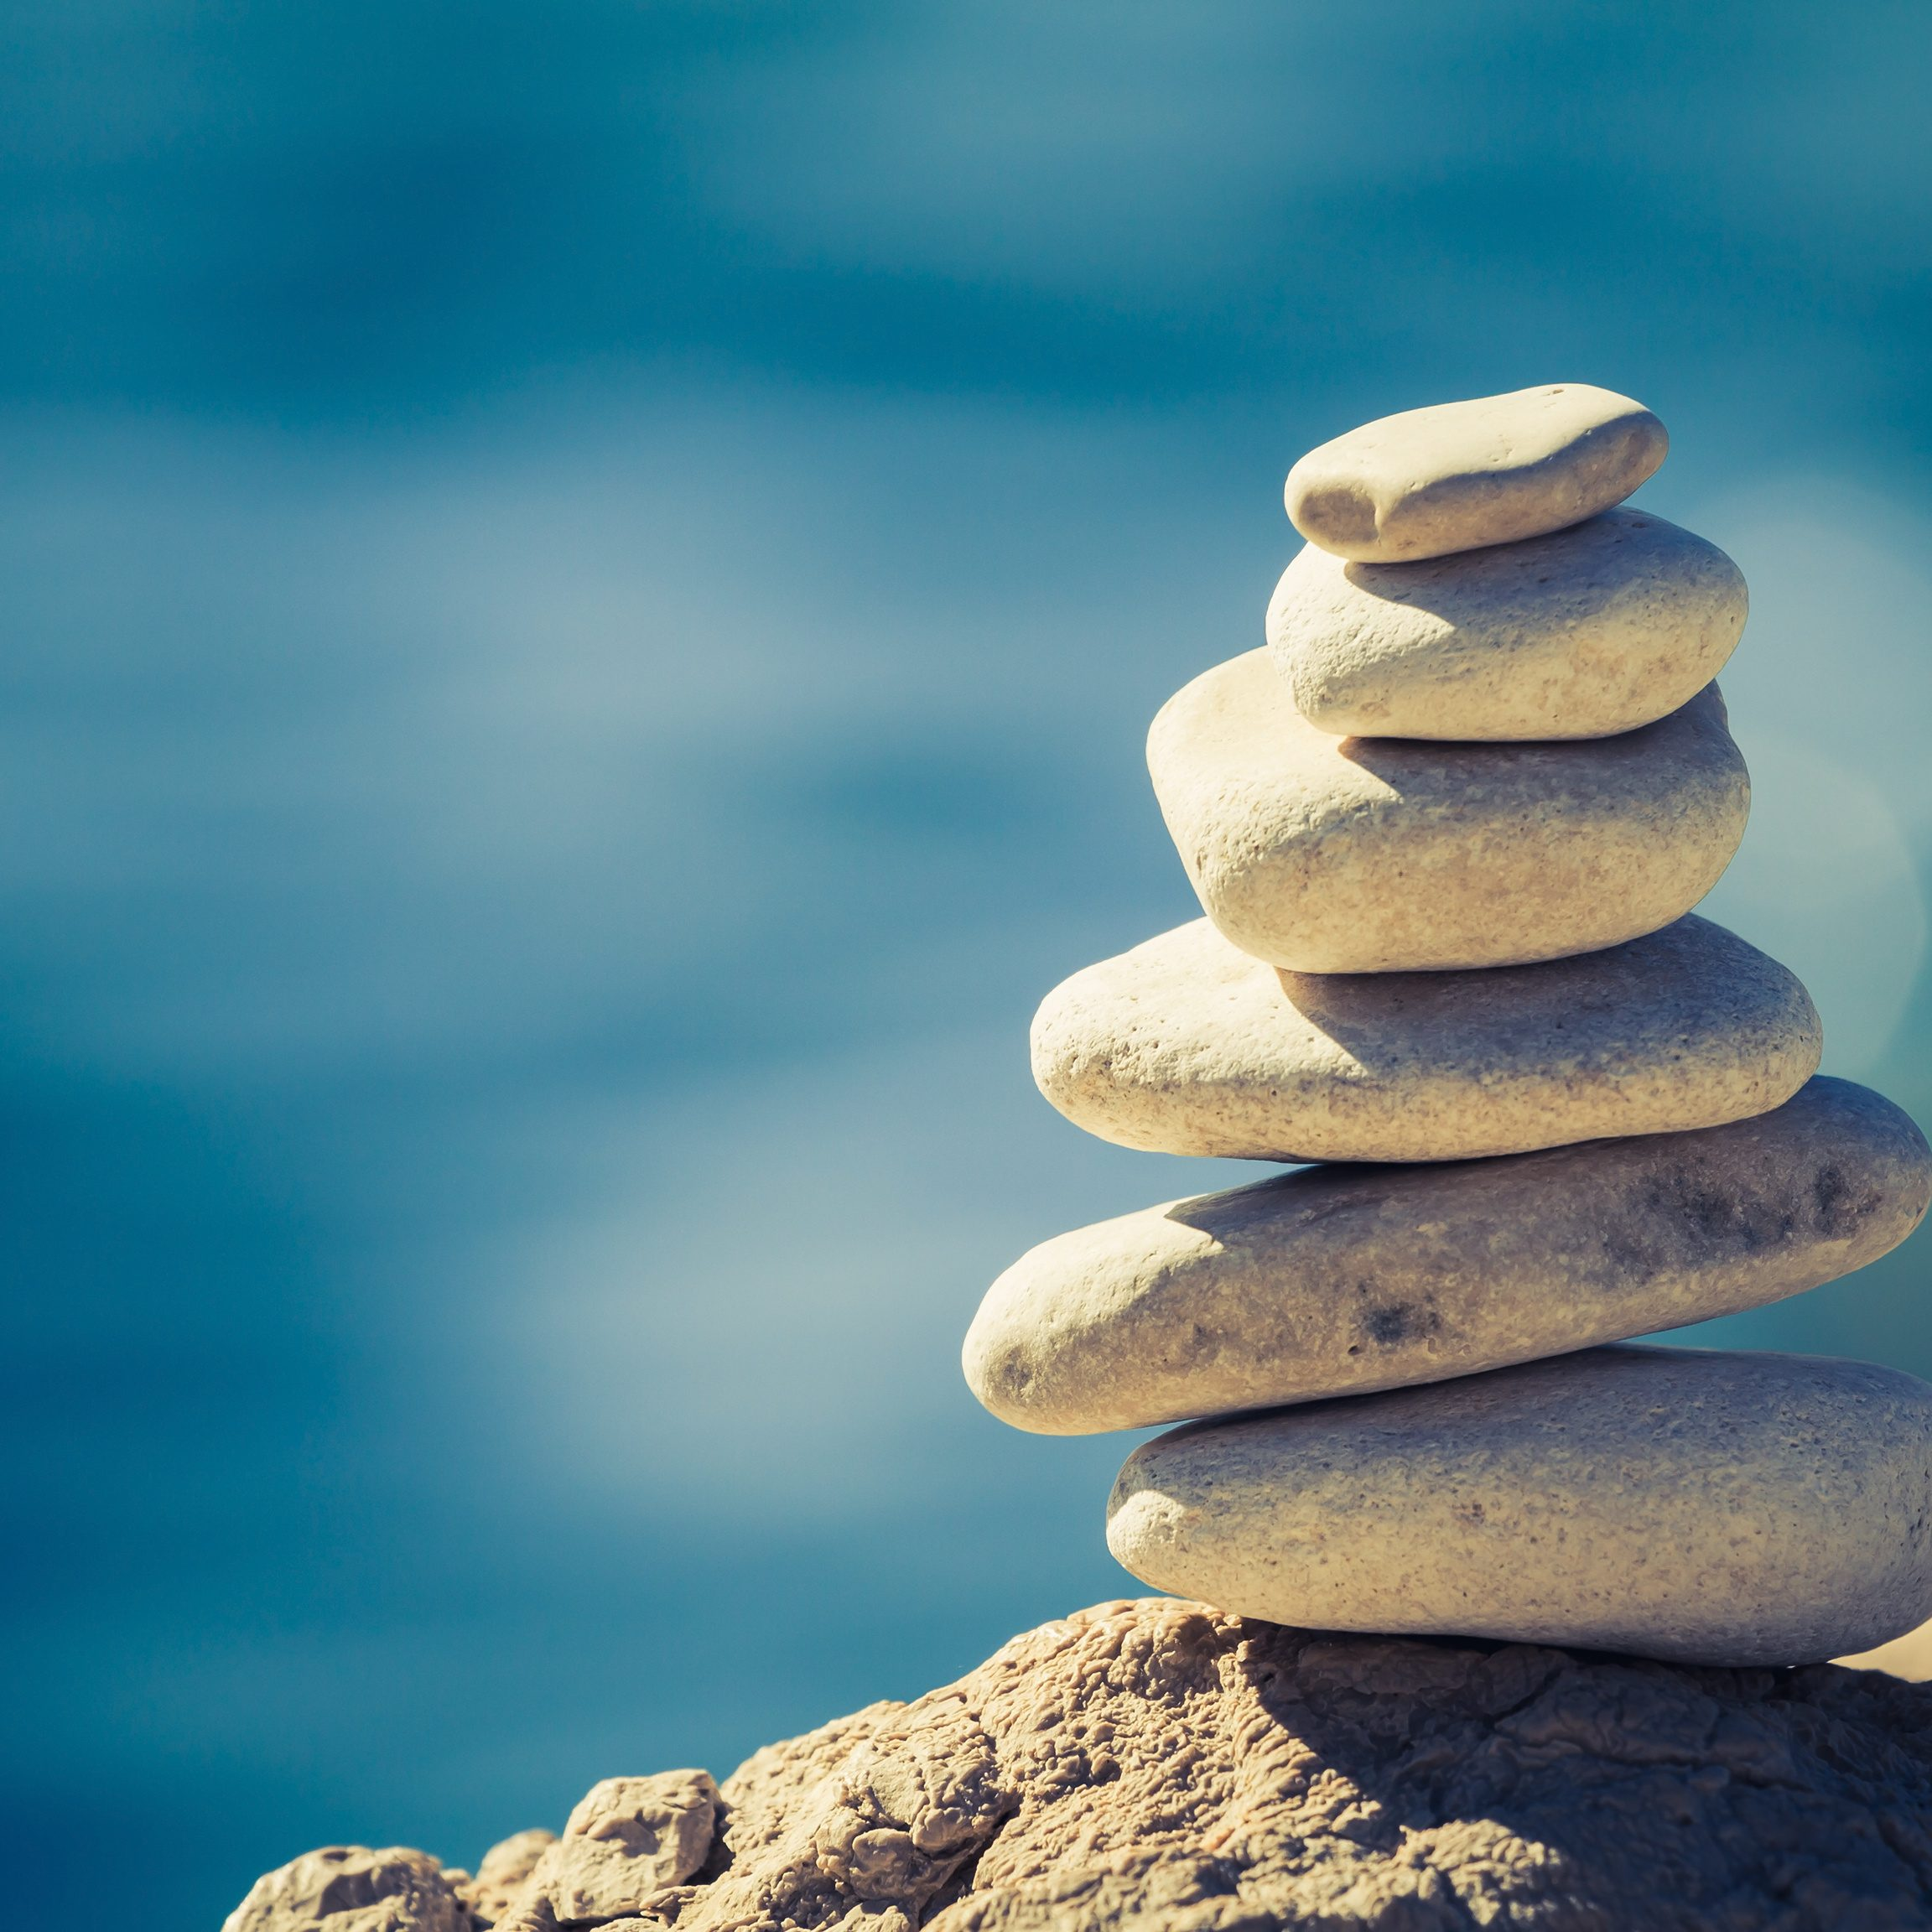 Balance and wellness retro spa concept, inspiration, zen-like and well being tranquil composition. Close-up of white pebbles stack over blue sea